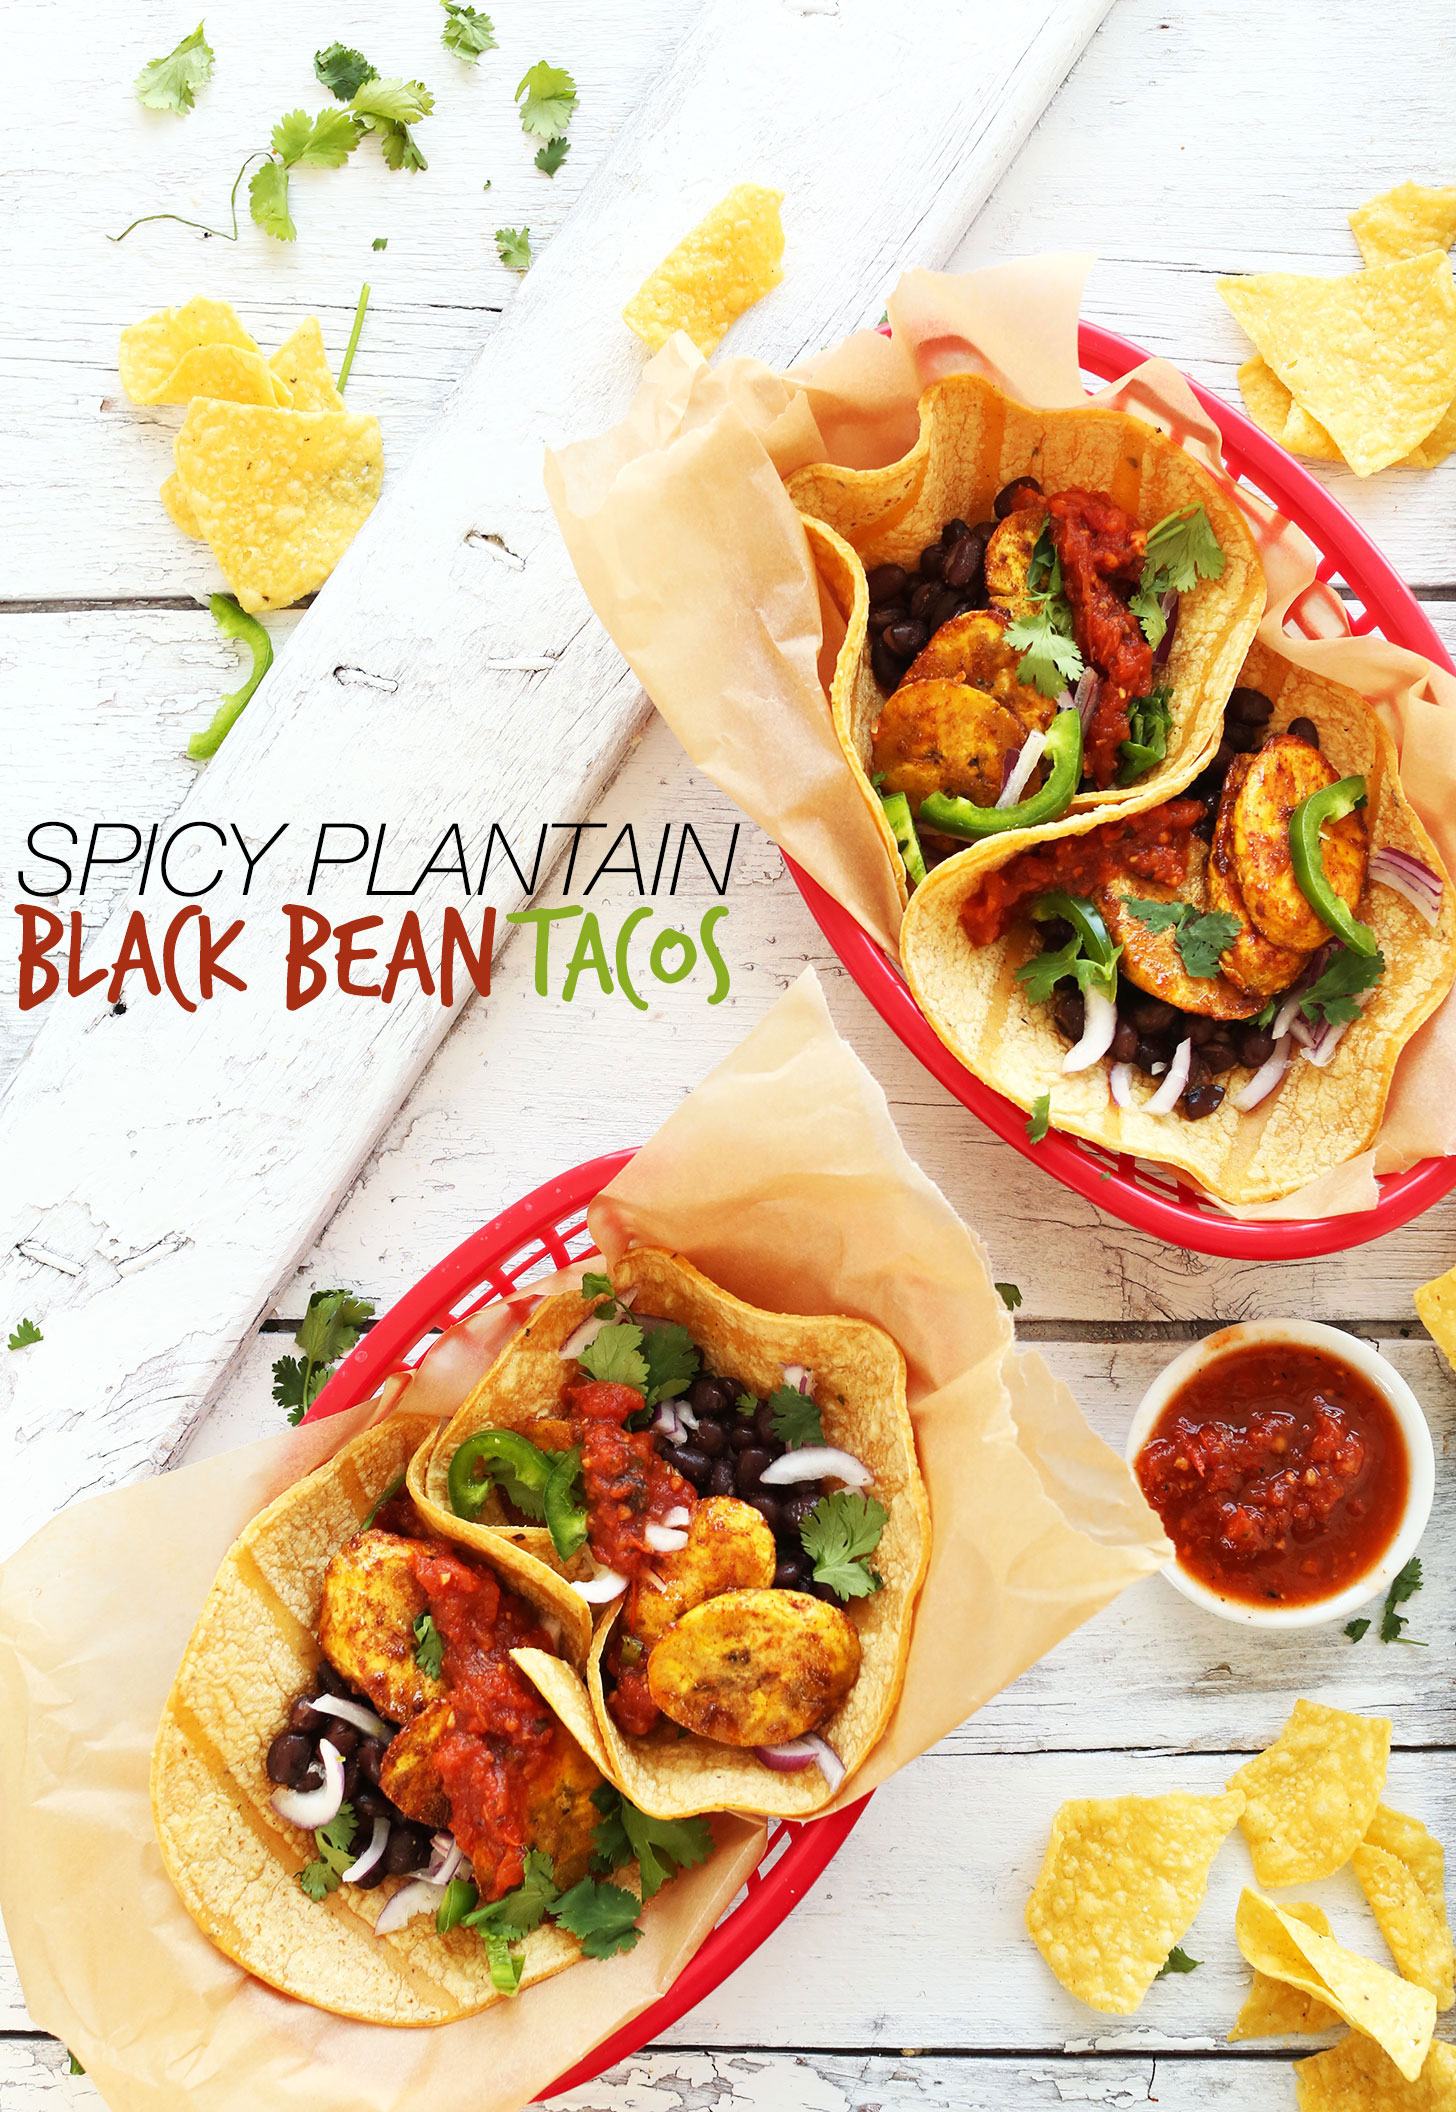 Trays of our Spicy Plantain Black Bean Tacos with a side of salsa